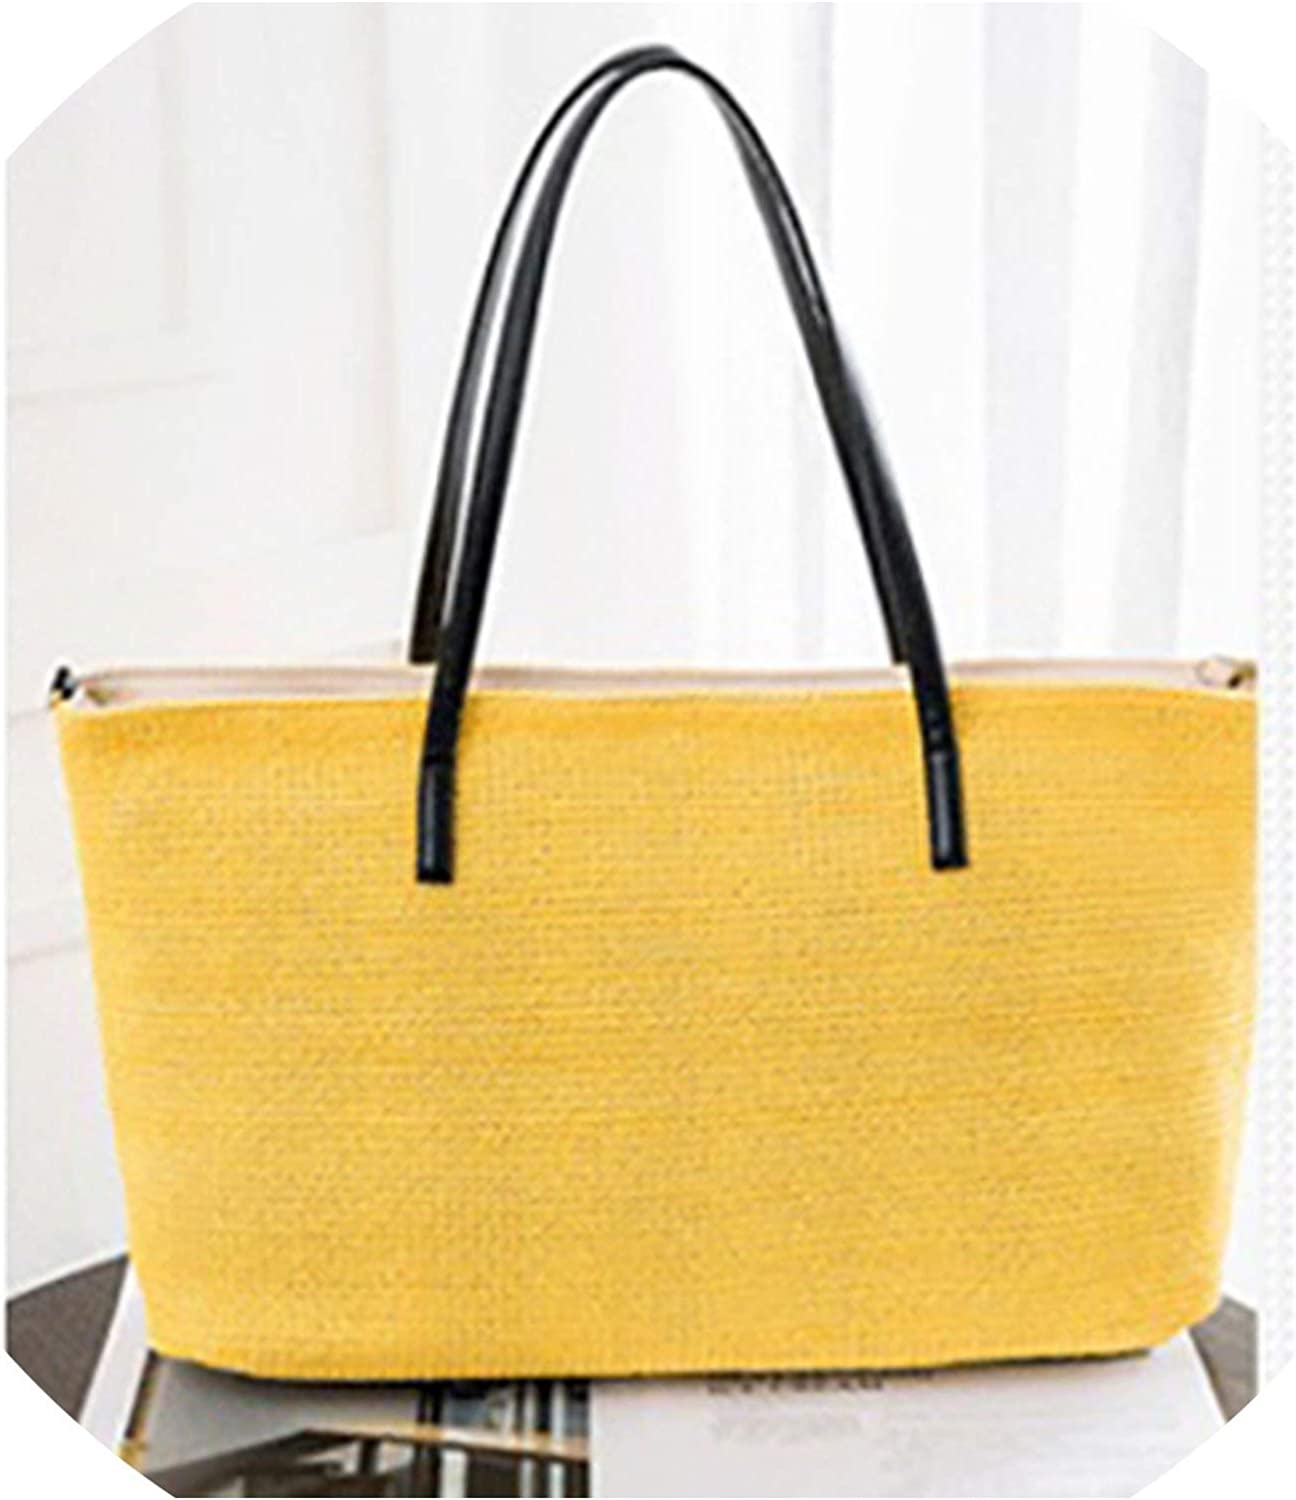 Hand-woven Shoulder Bag Lady holiday bag Travel Shopping Woven Beach Shoulder Bag Bohemia Handbag